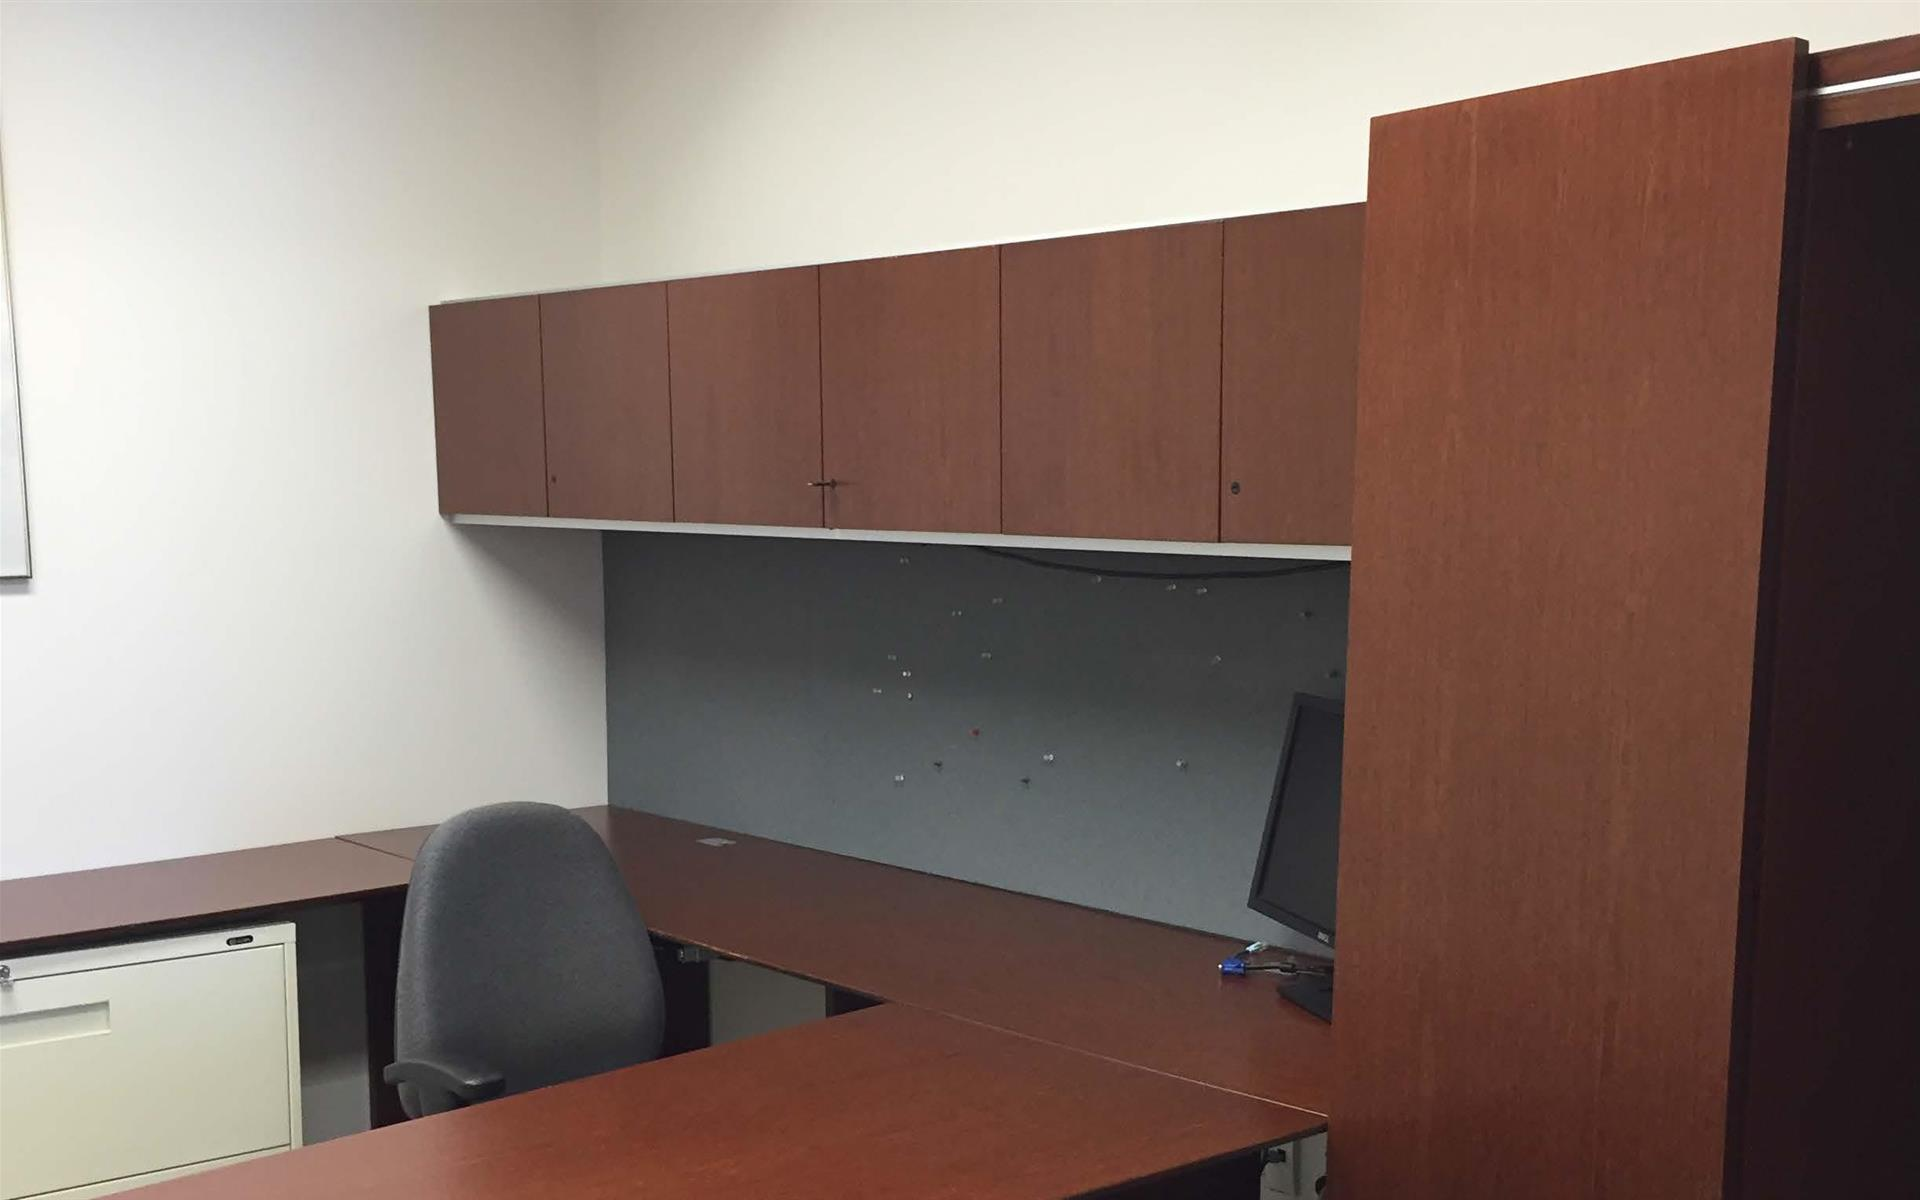 American Bankruptcy Institute - Furnished Private Office #1